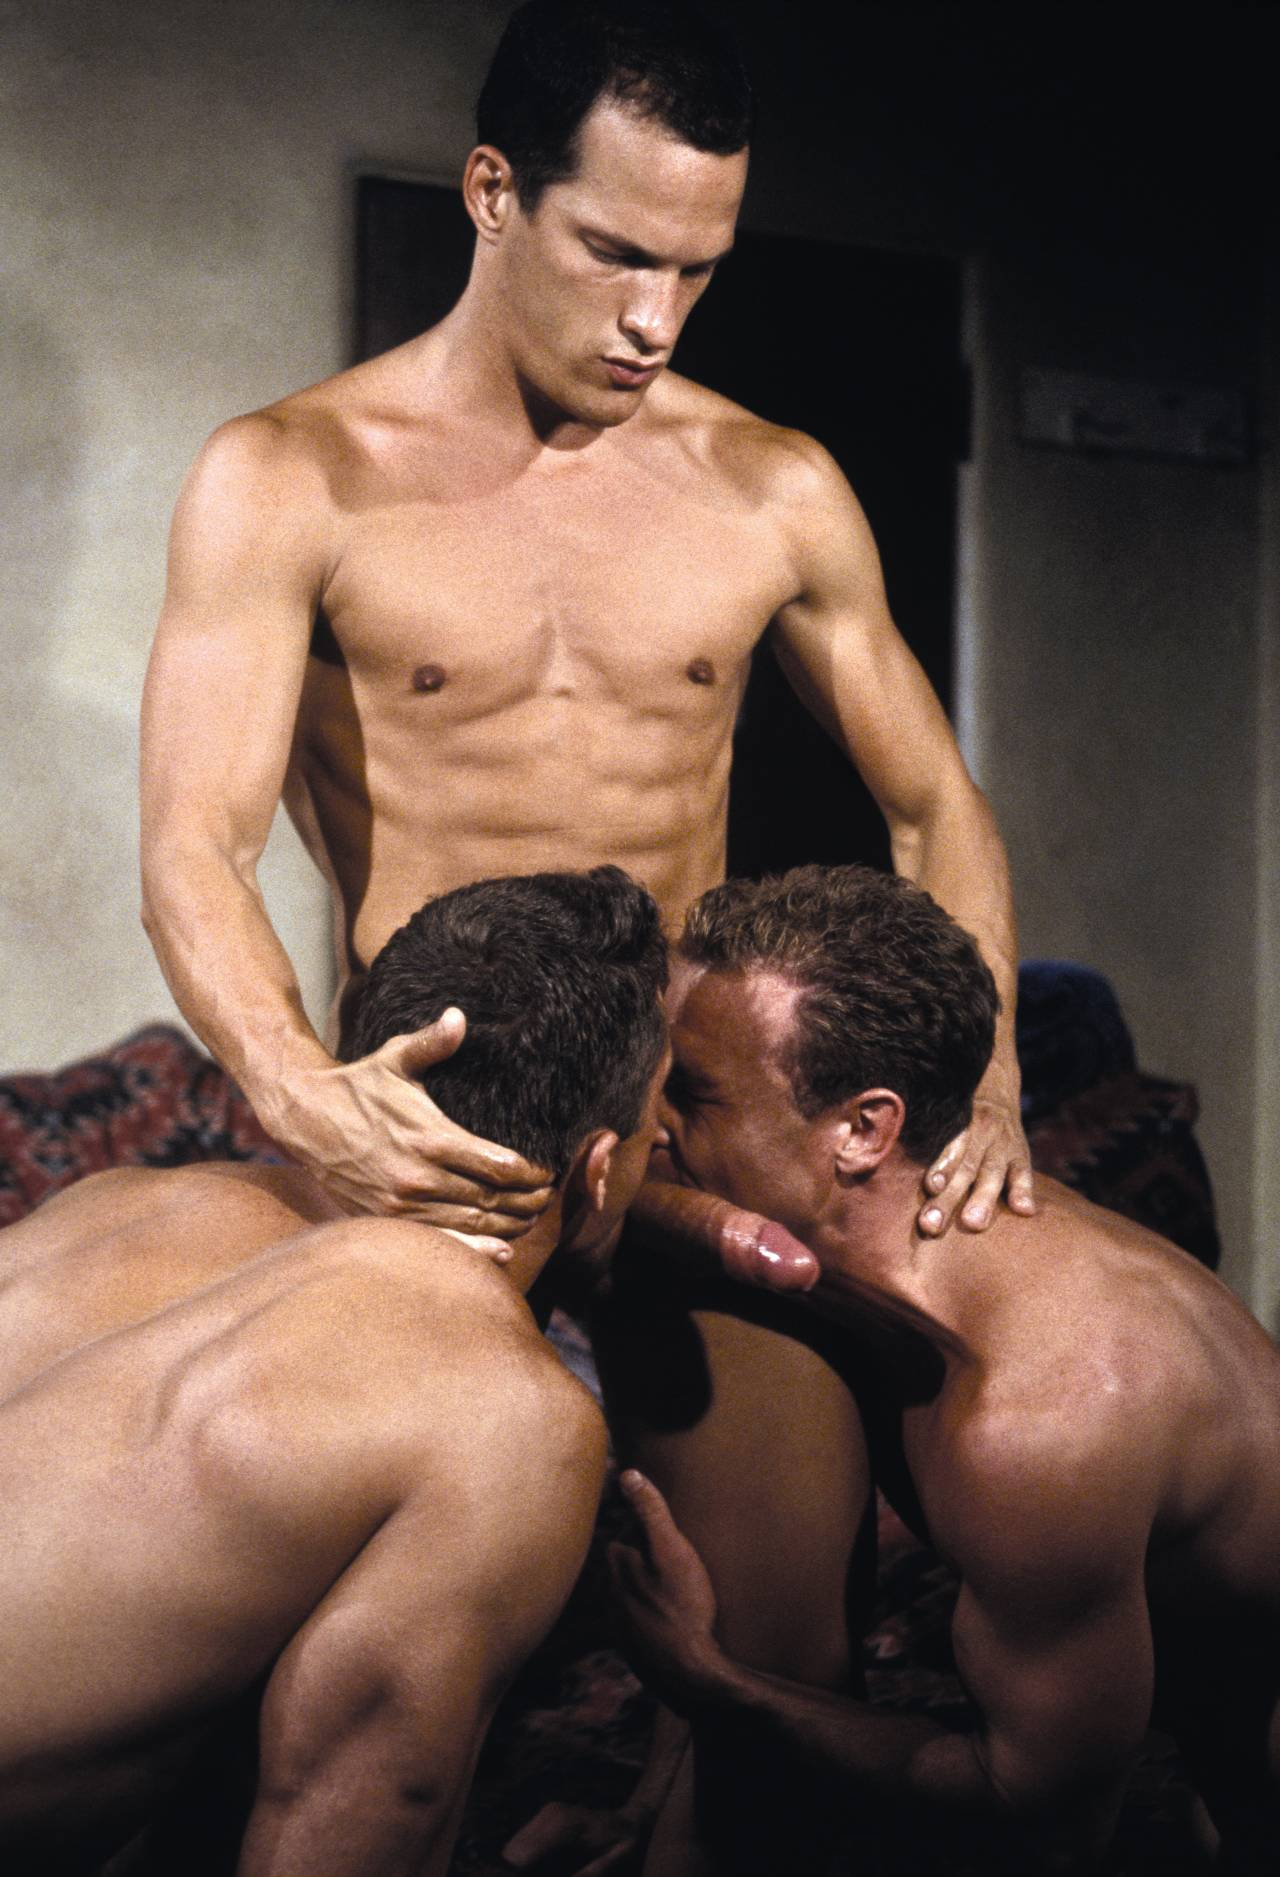 from Chad kevin miles gay porn star